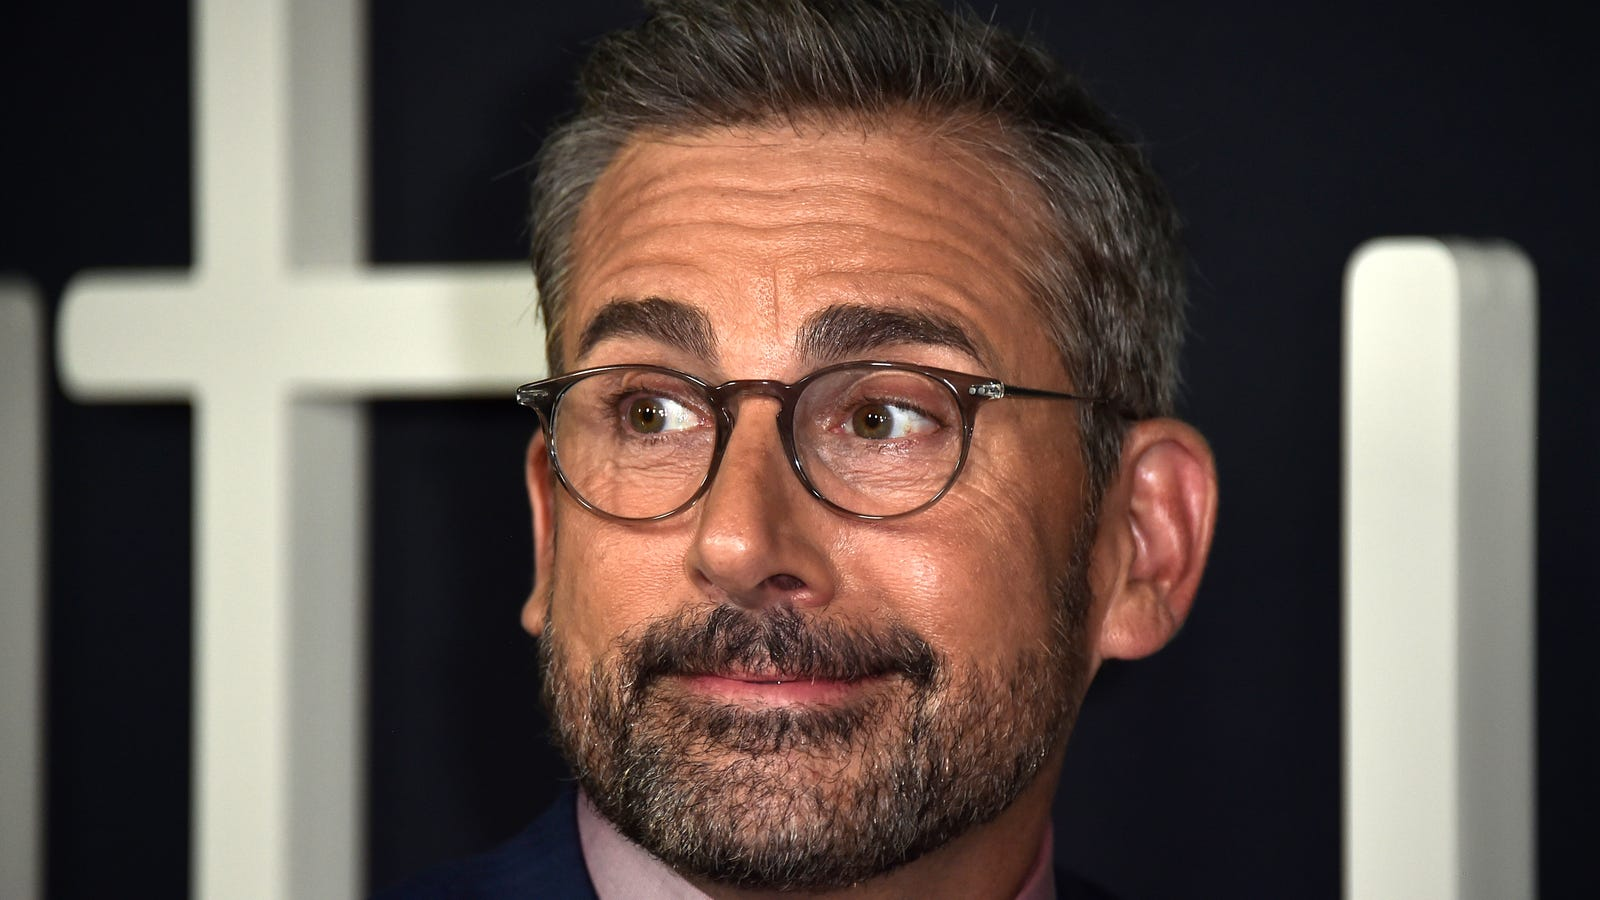 Dramatic actor Steve Carell gets to be funny again as next week's SNL host